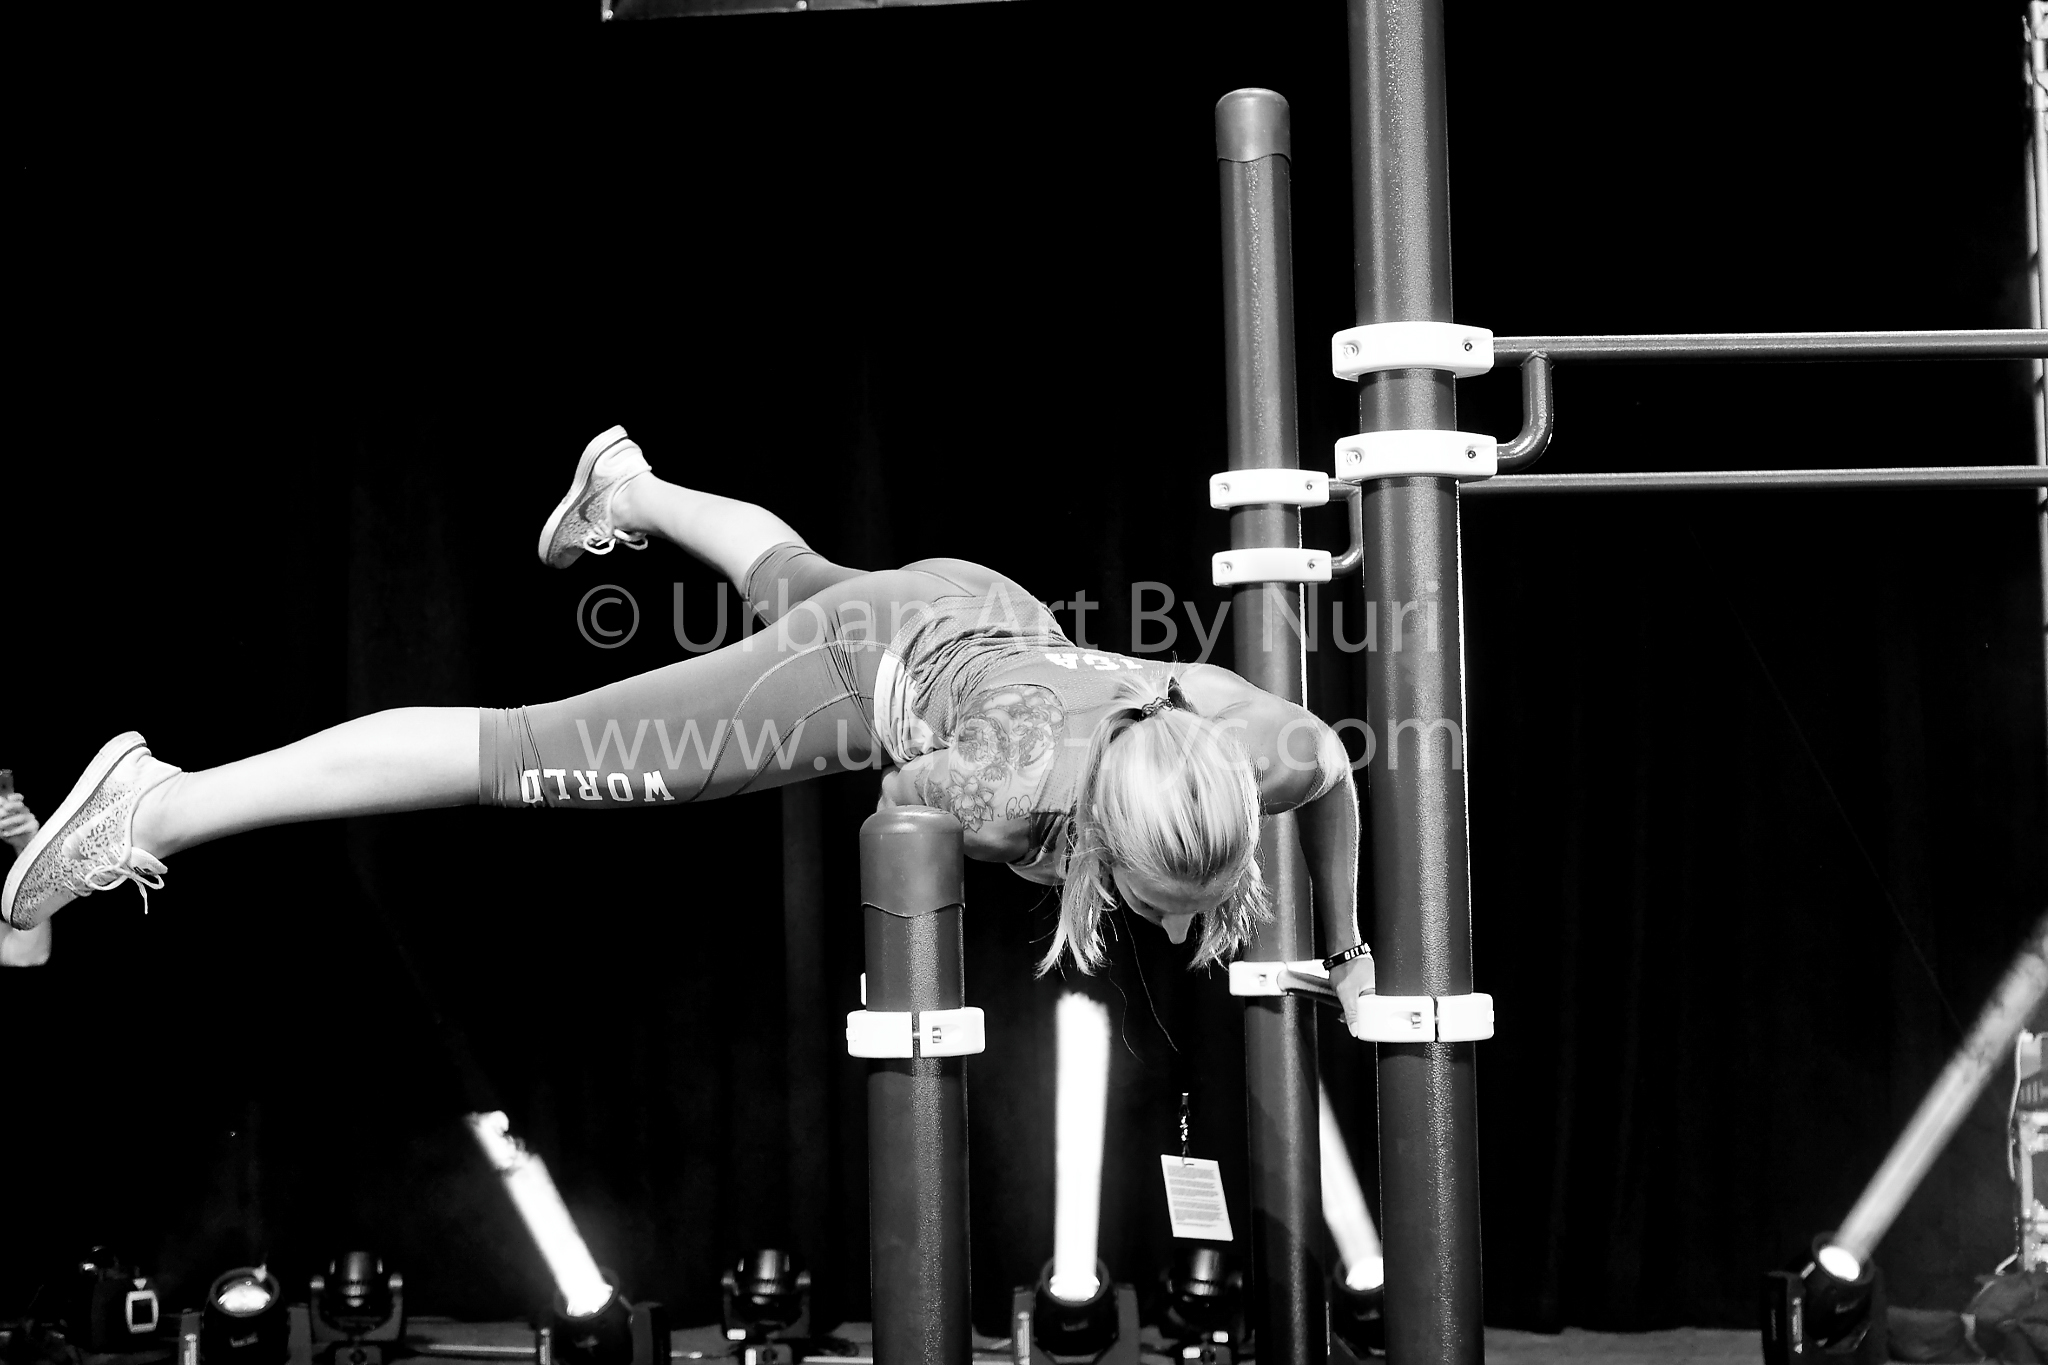 Awesome hot of UFL athlete Isa Bell of the World Team, performing a highly difficult balancing manuever on the dip bars.